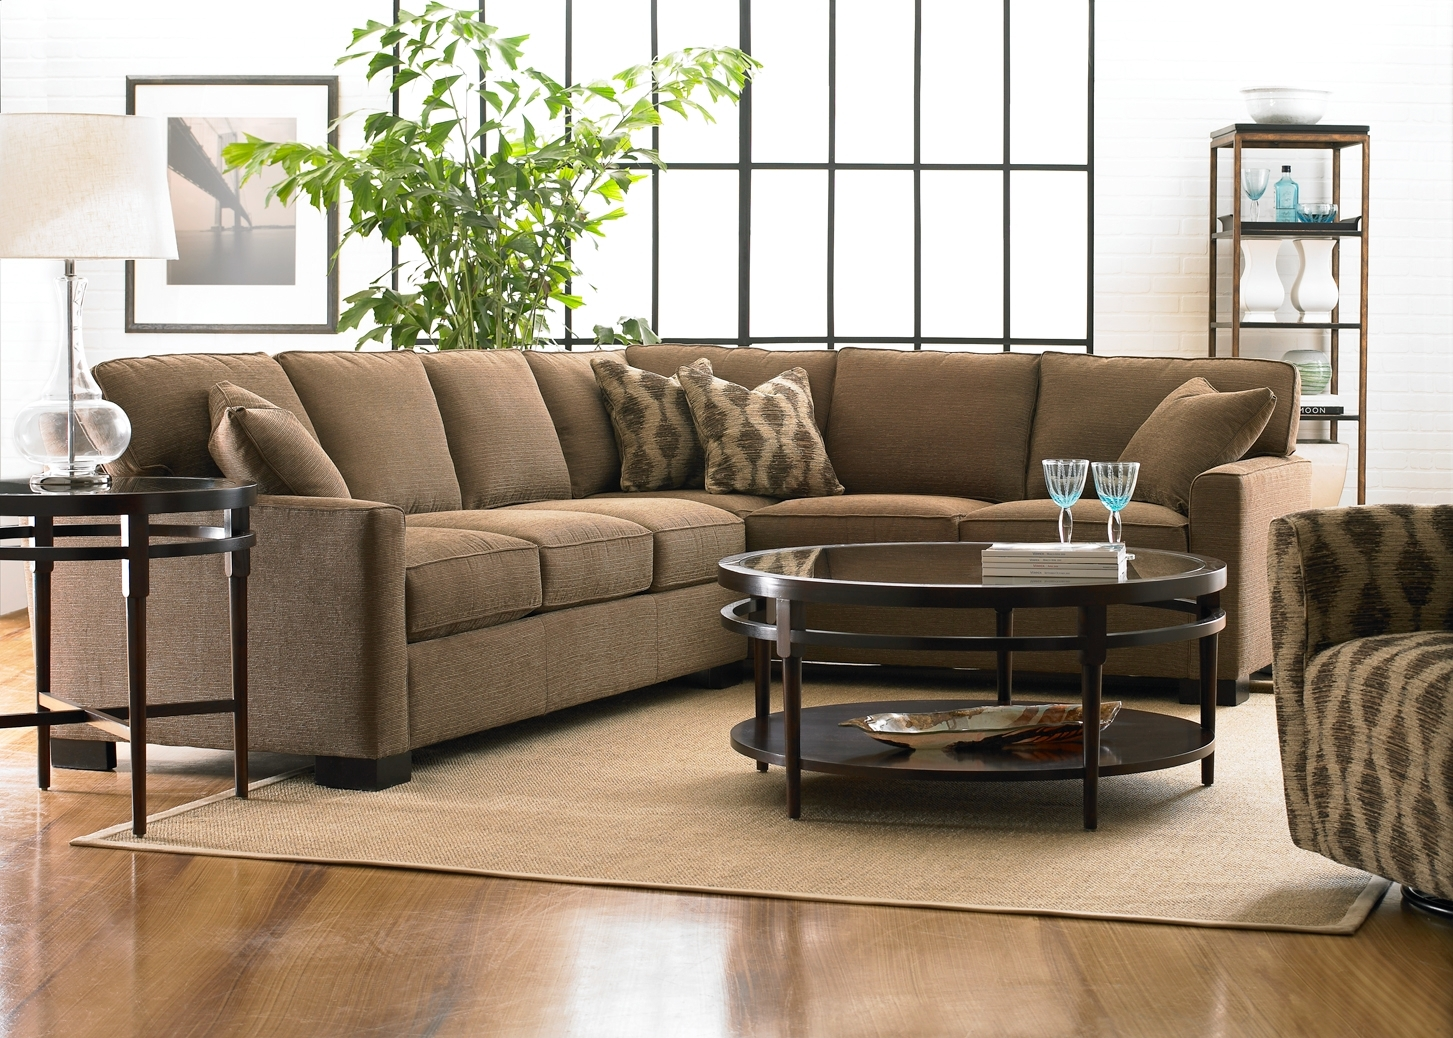 Inspirational Small Space Sectional Sofa 73 Sofas And Couches Ideas Inside Small Spaces Sectional Sofas (View 9 of 10)